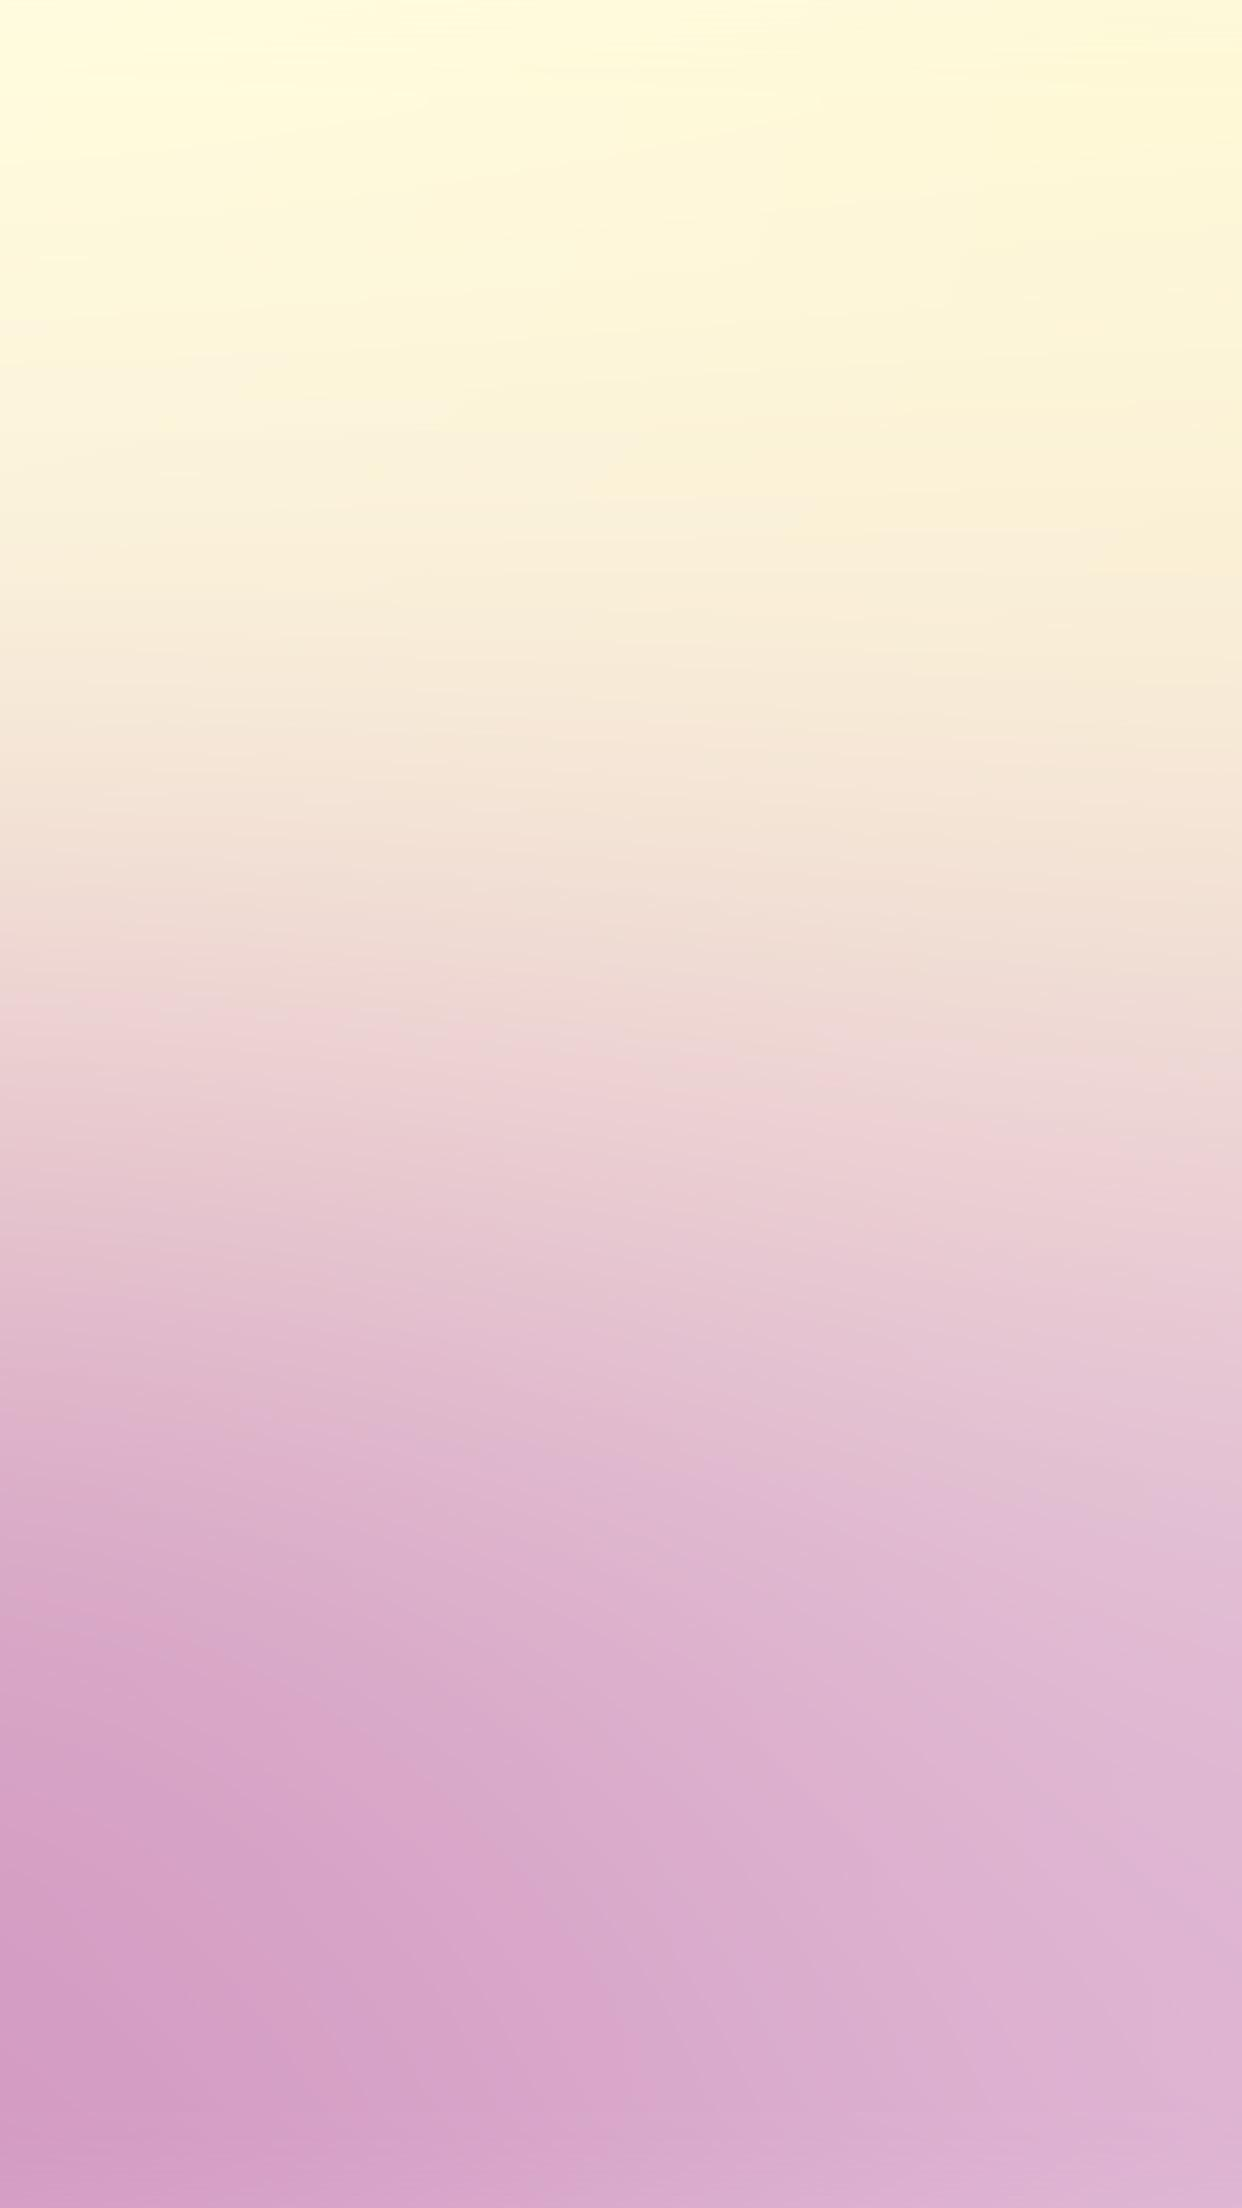 Pastel Aesthetic Wallpapers - Wallpaper Cave